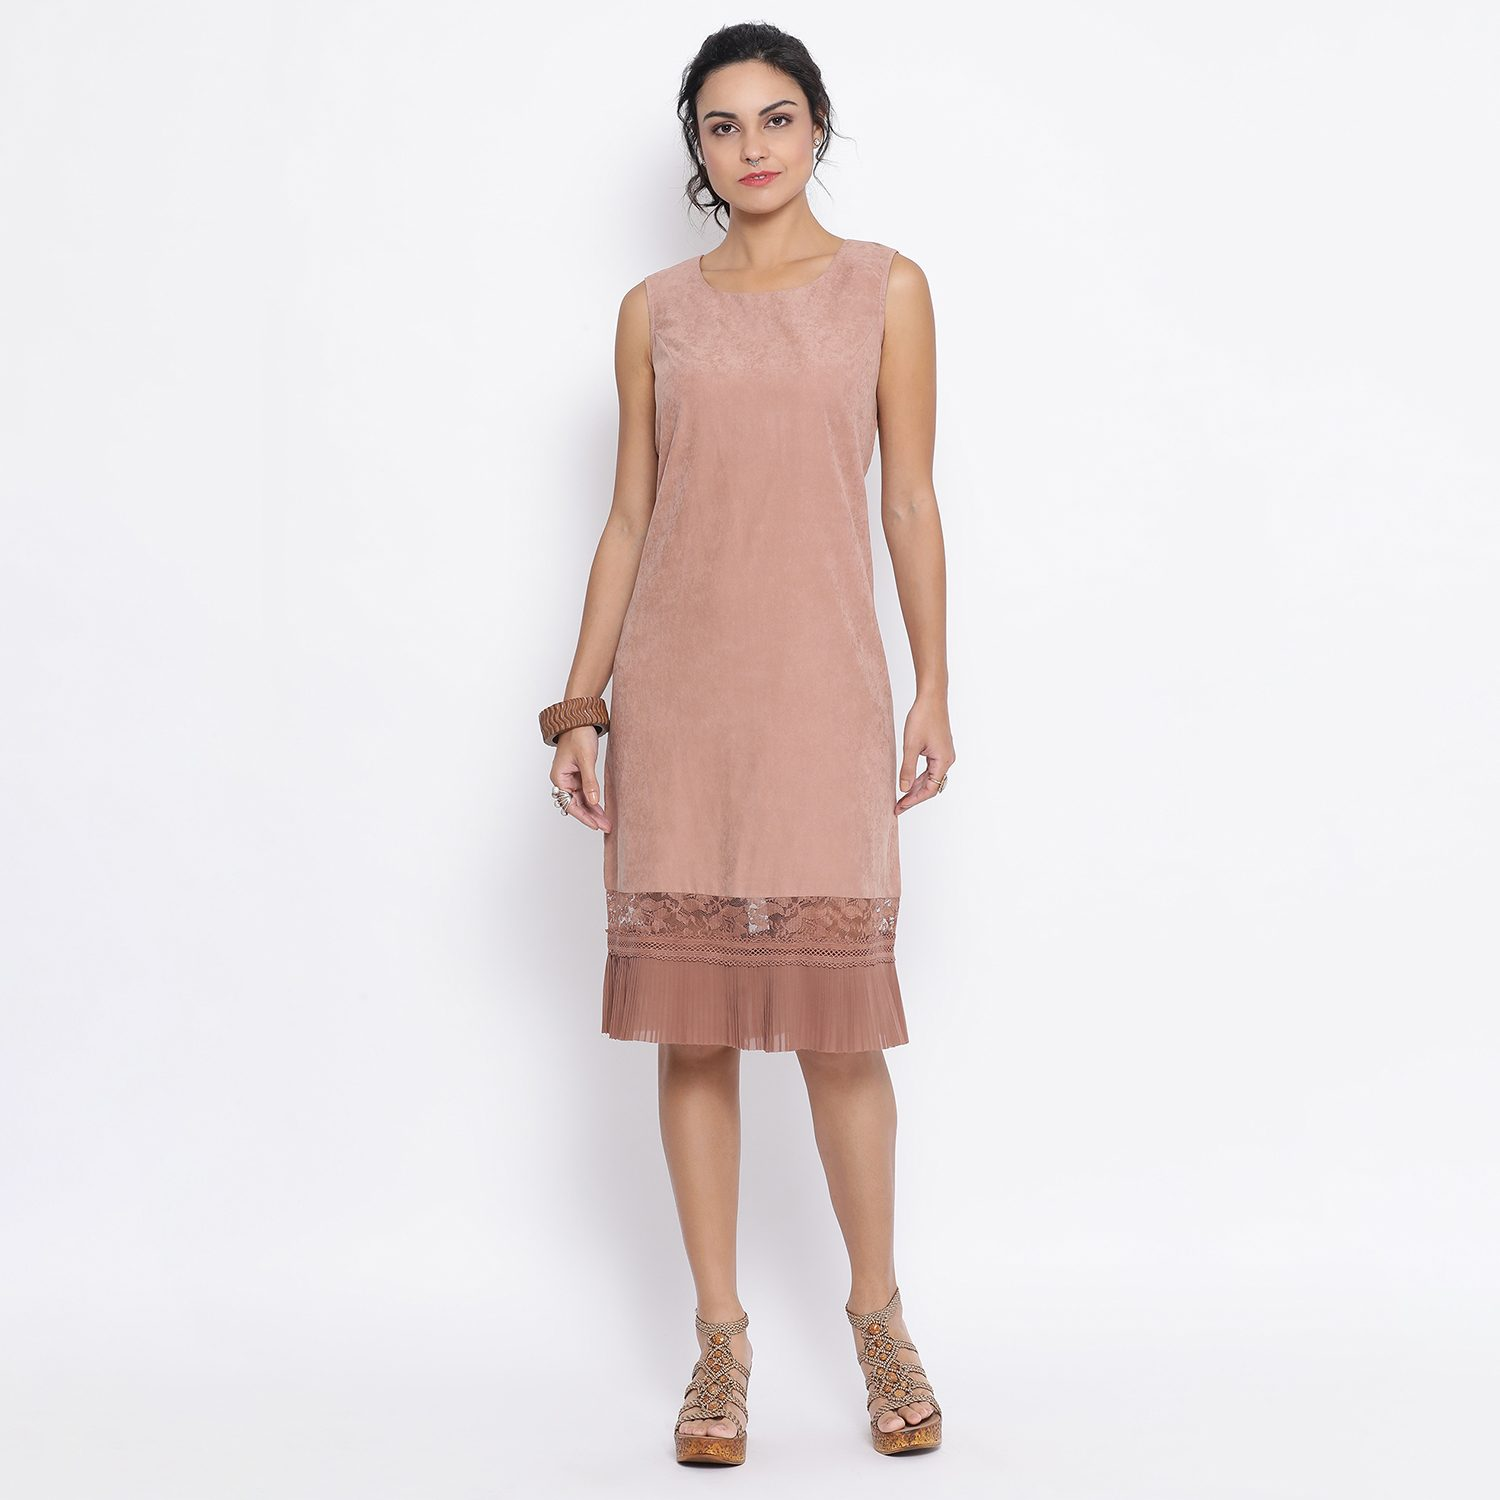 Buy Sleeveless Rust Dress With Frill At Bottom For Women